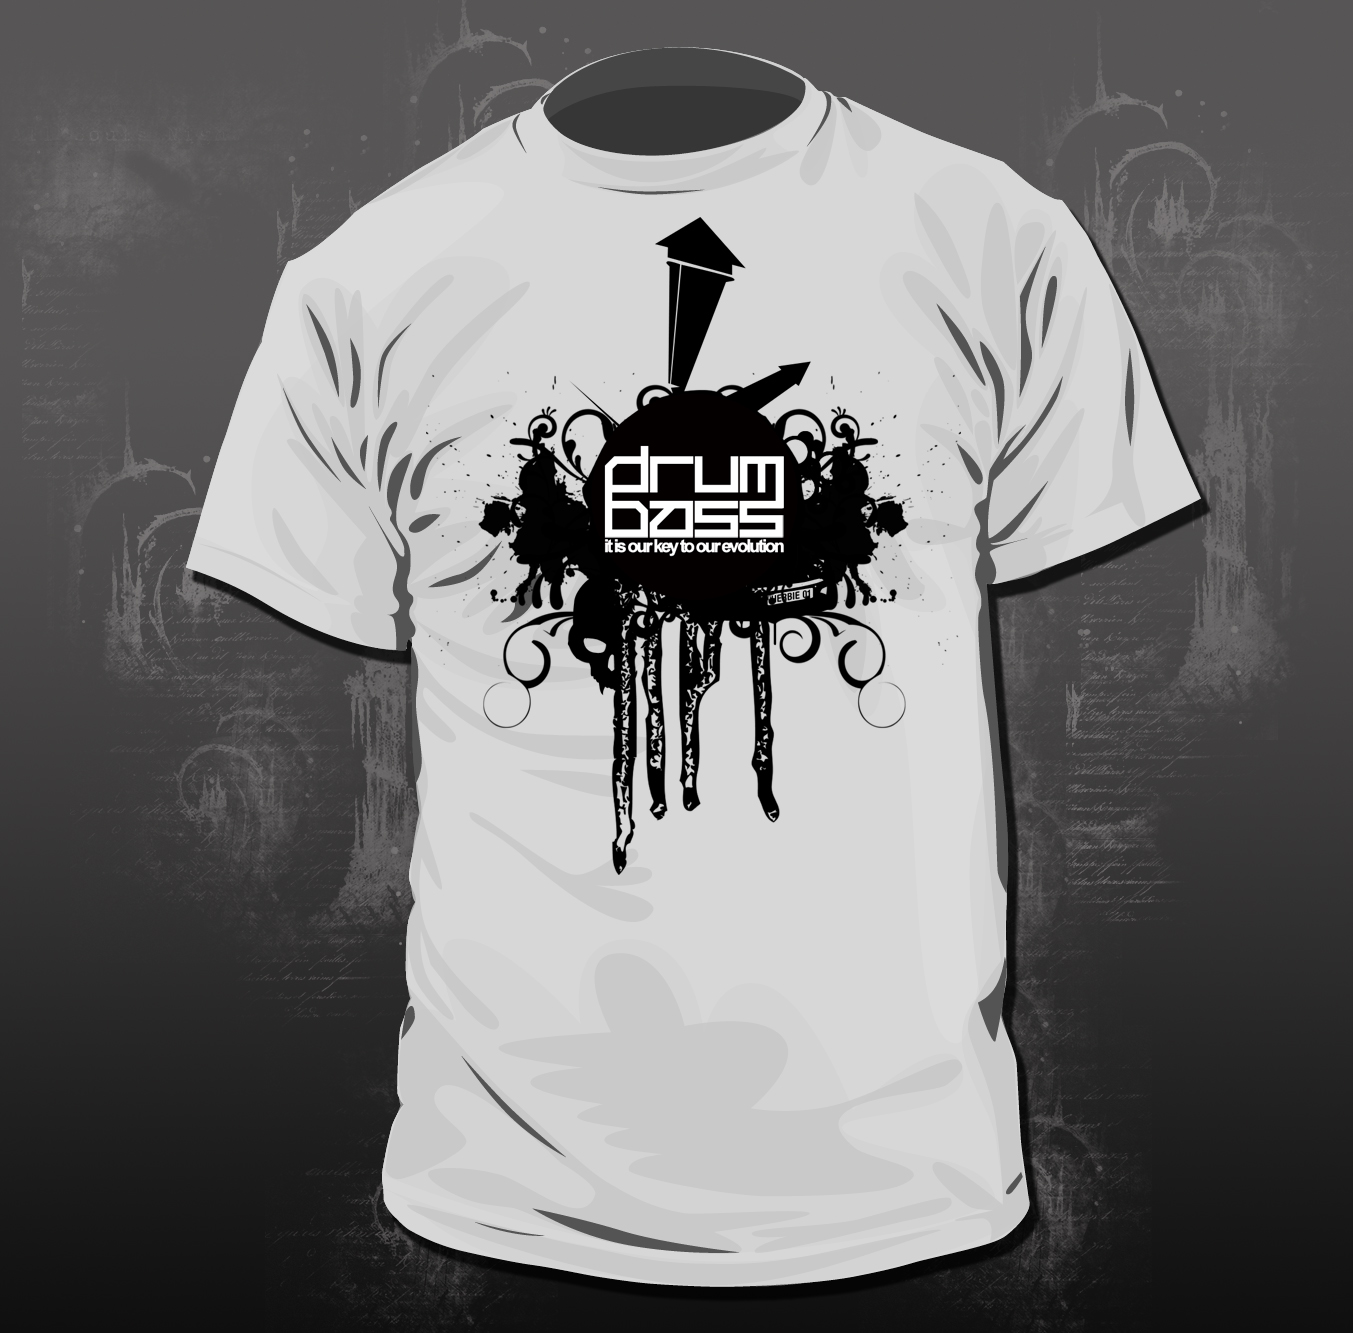 websites to design shirts shirt design ideas ideas for t shirt designs - T Shirt Logo Design Ideas